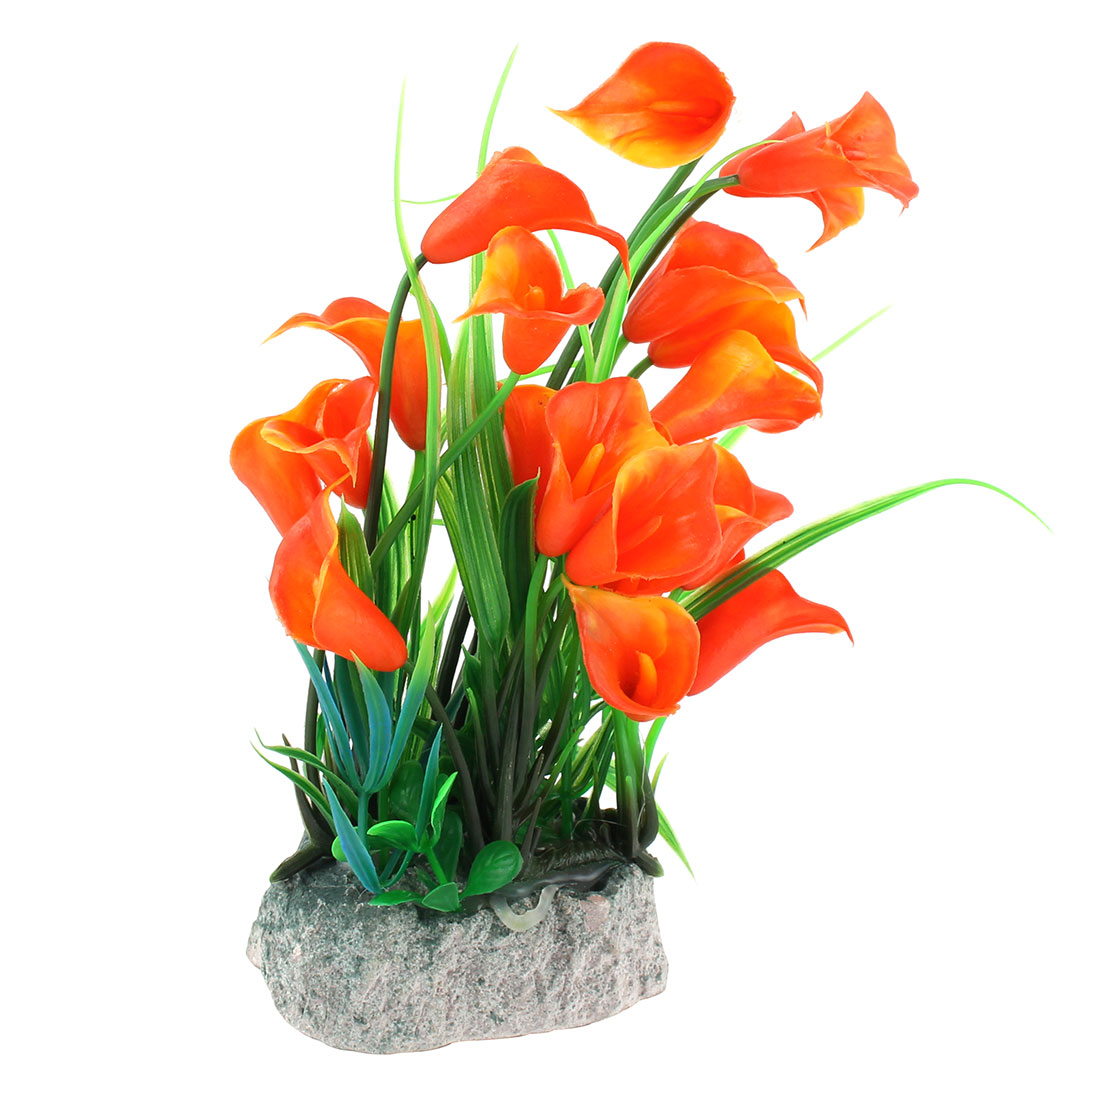 Aquarium Fish Tank Plastic Trumpet Flower Design Landscaping Manmade Aquatic Water Plant 21cm High